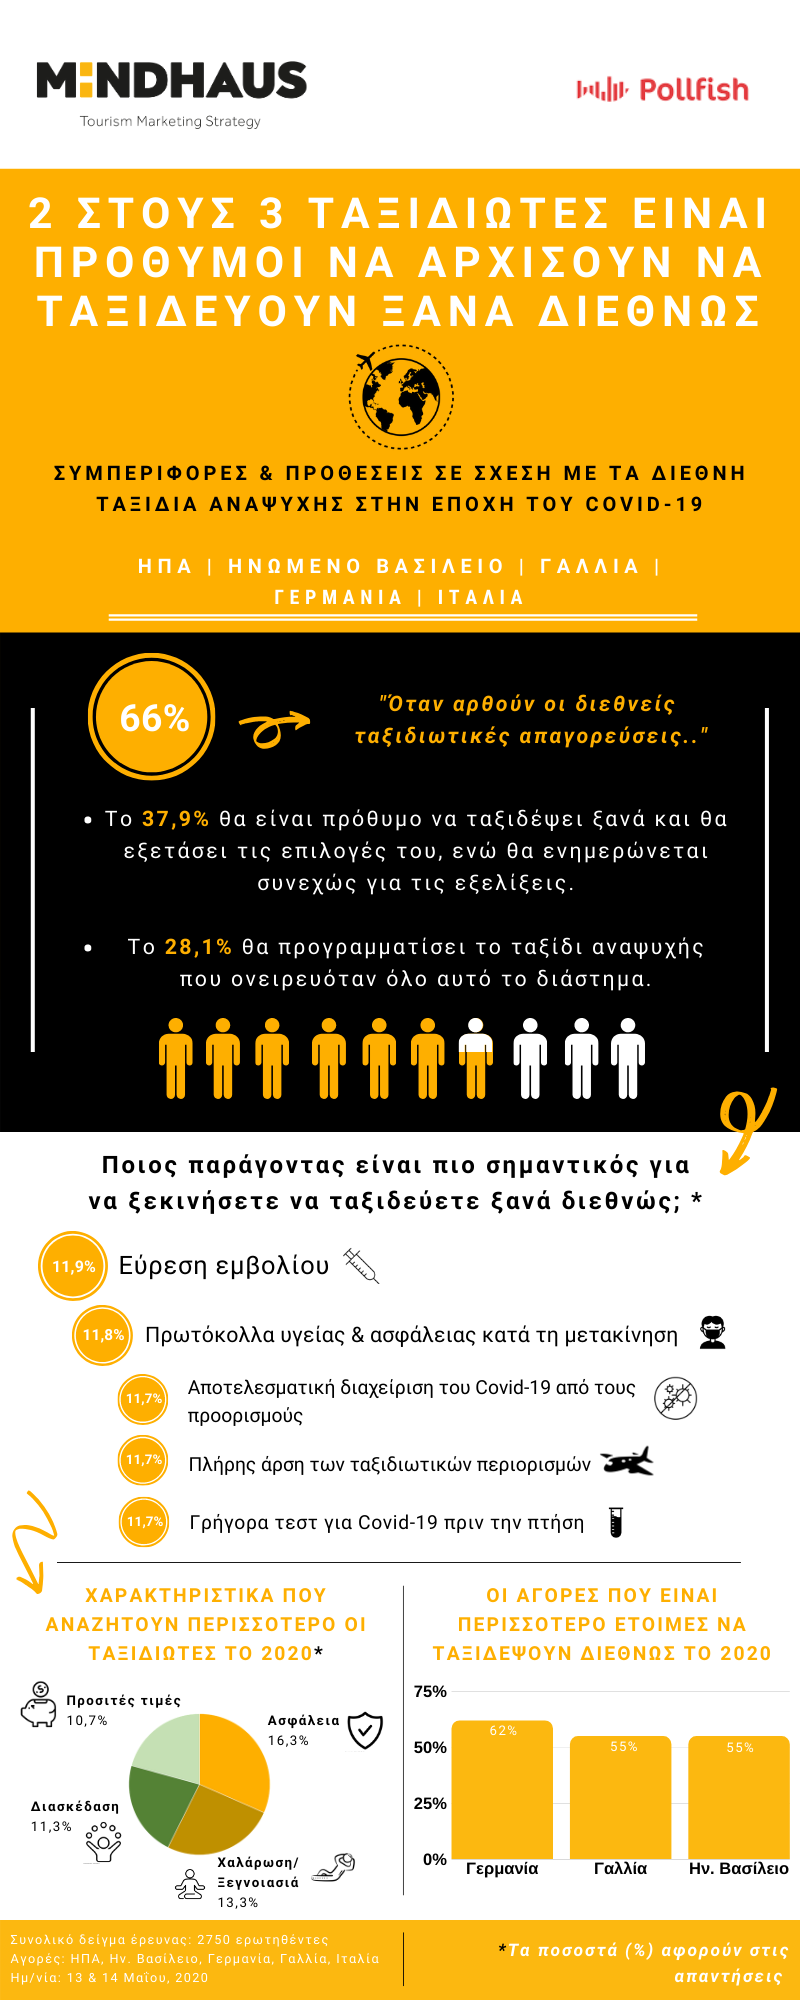 gr_infographic_covid-19_travel_behaviors.png